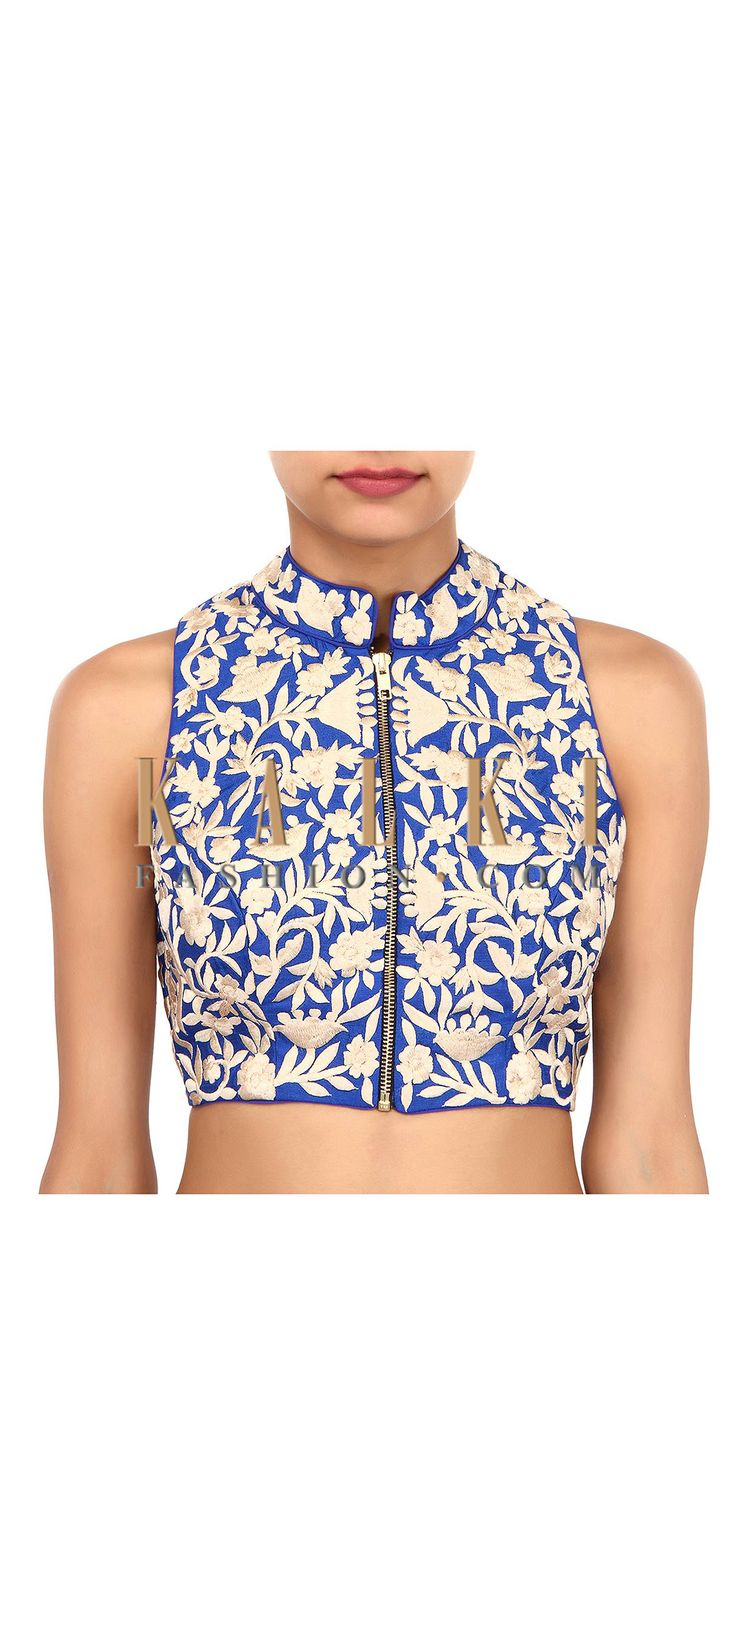 Buy Online from the link below. We ship worldwide (Free Shipping over US$100). Product SKU - 304454. Product Link - http://www.kalkifashion.com/blue-blouse-adorn-in-thread-embroidery-only-on-kalki.html